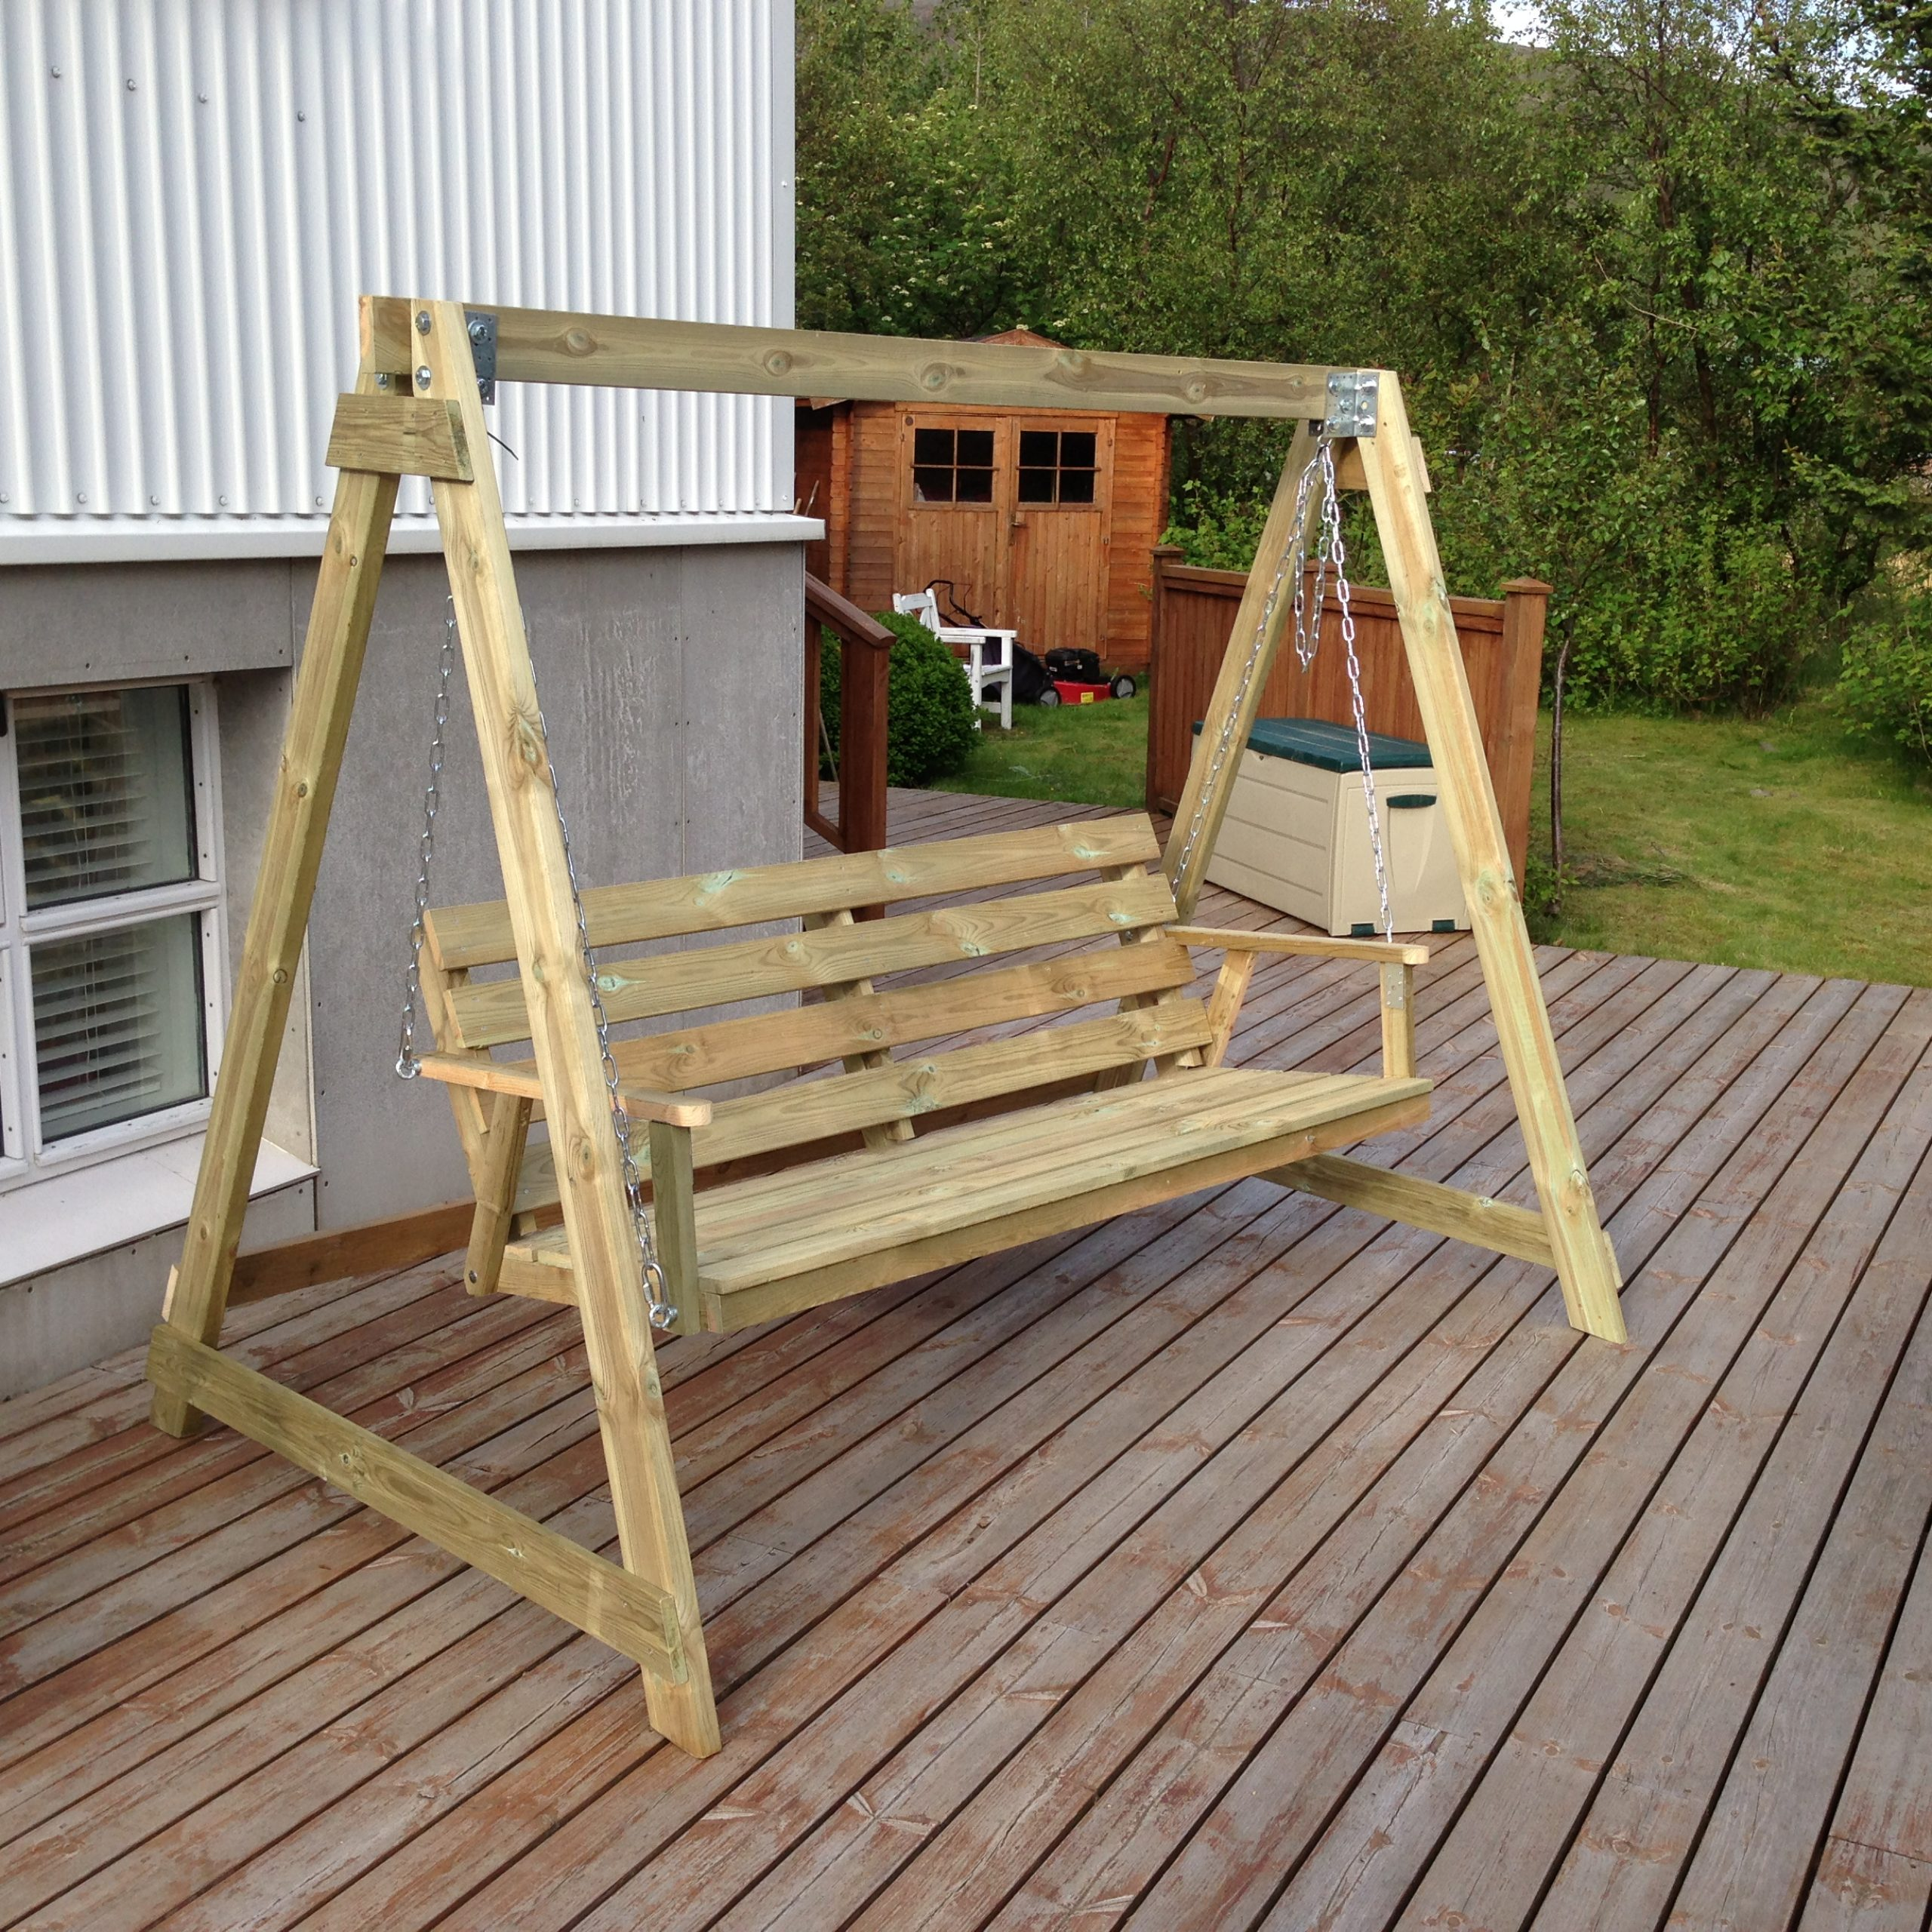 Bench Swing Plans Wooden Porch Swings Patio At Walmart With Intended For Porch Swings With Stand (View 24 of 25)